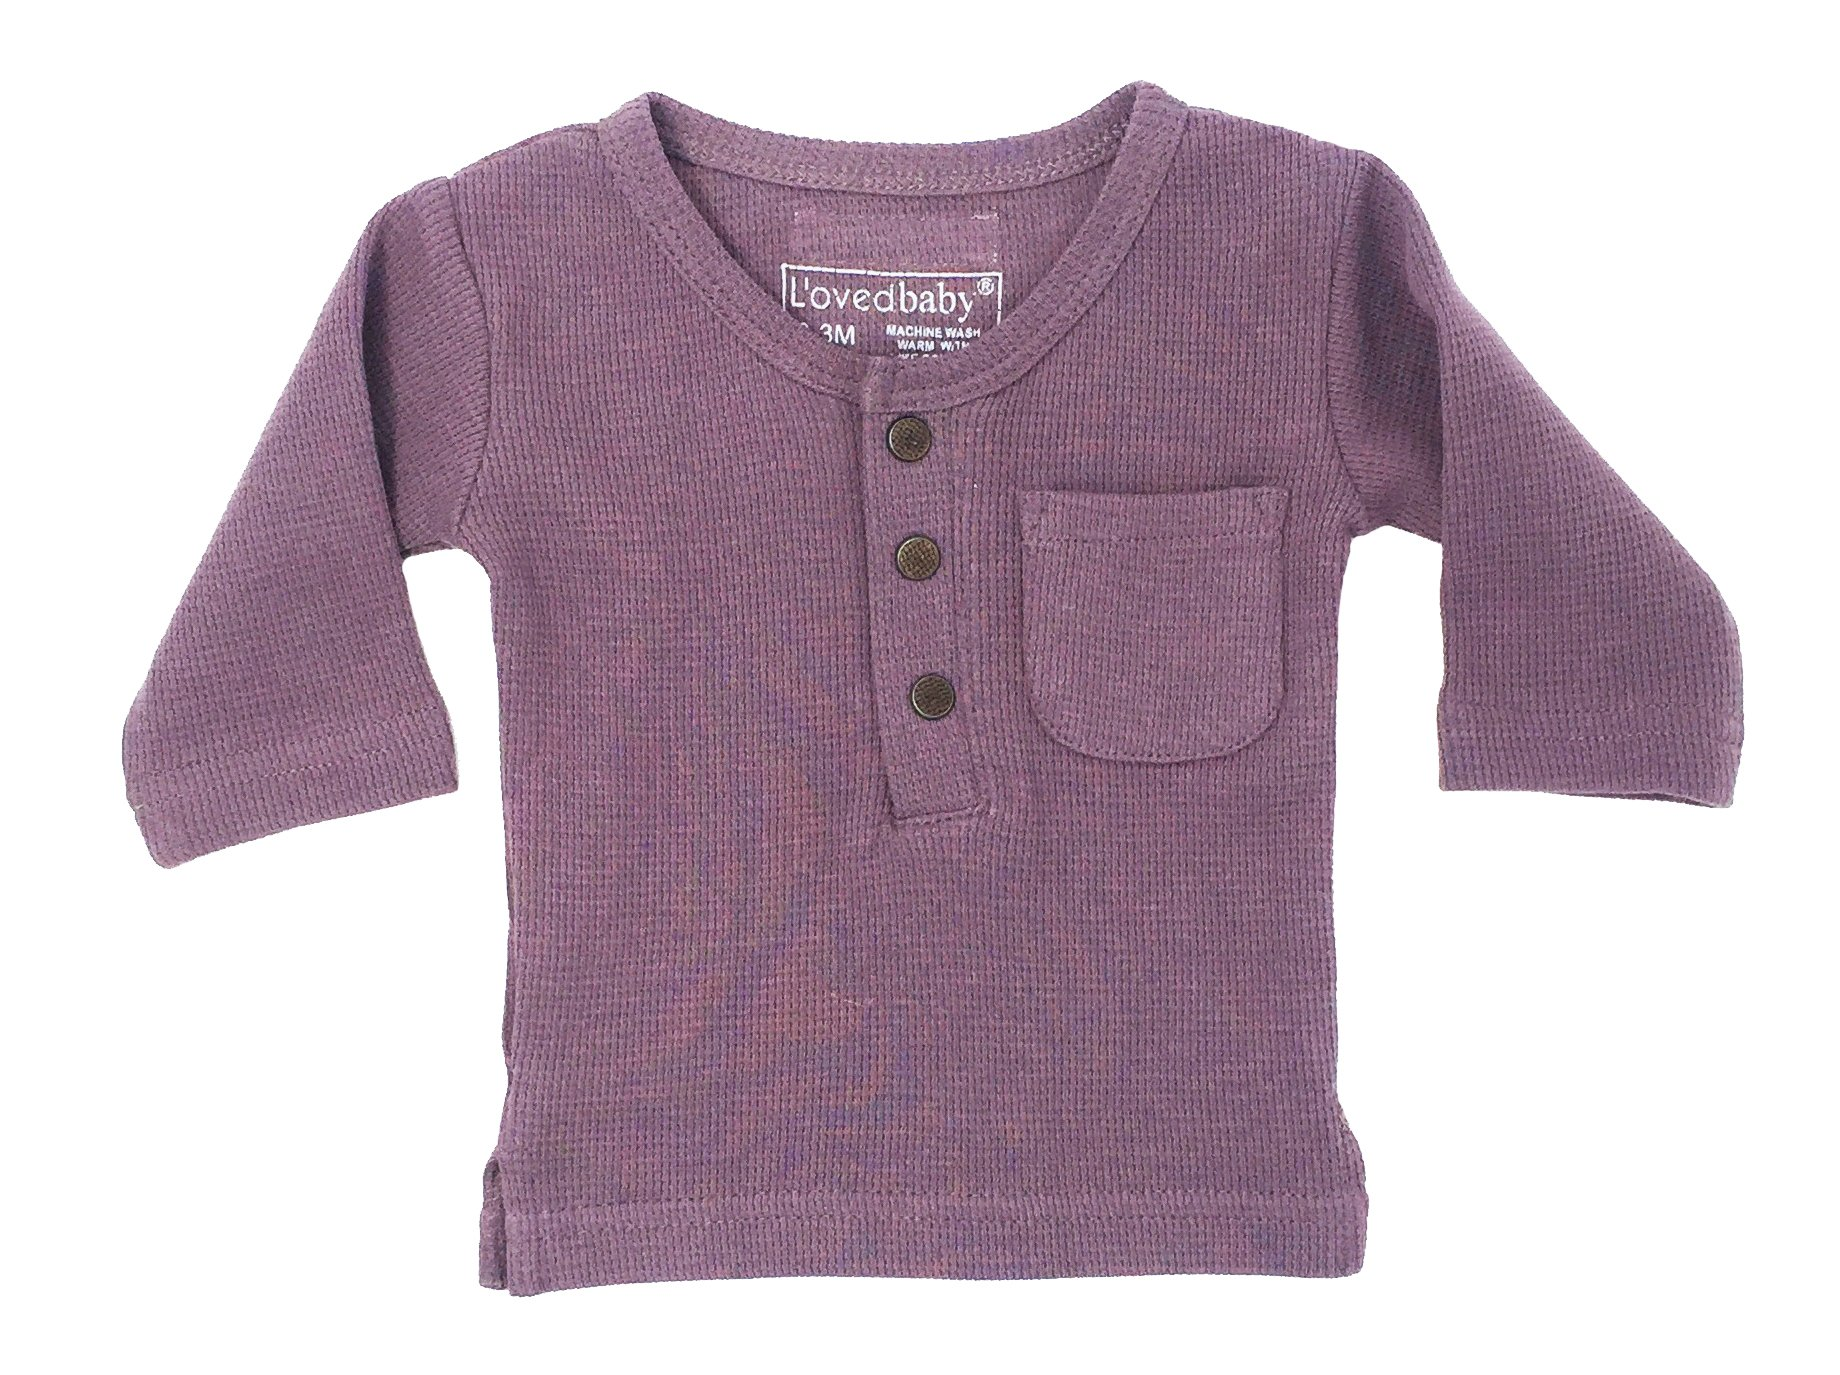 L'ovedbaby Unisex-Baby Organic Cotton Long Sleeve Shirt (Thermal Amethyst, 9-12 Months)